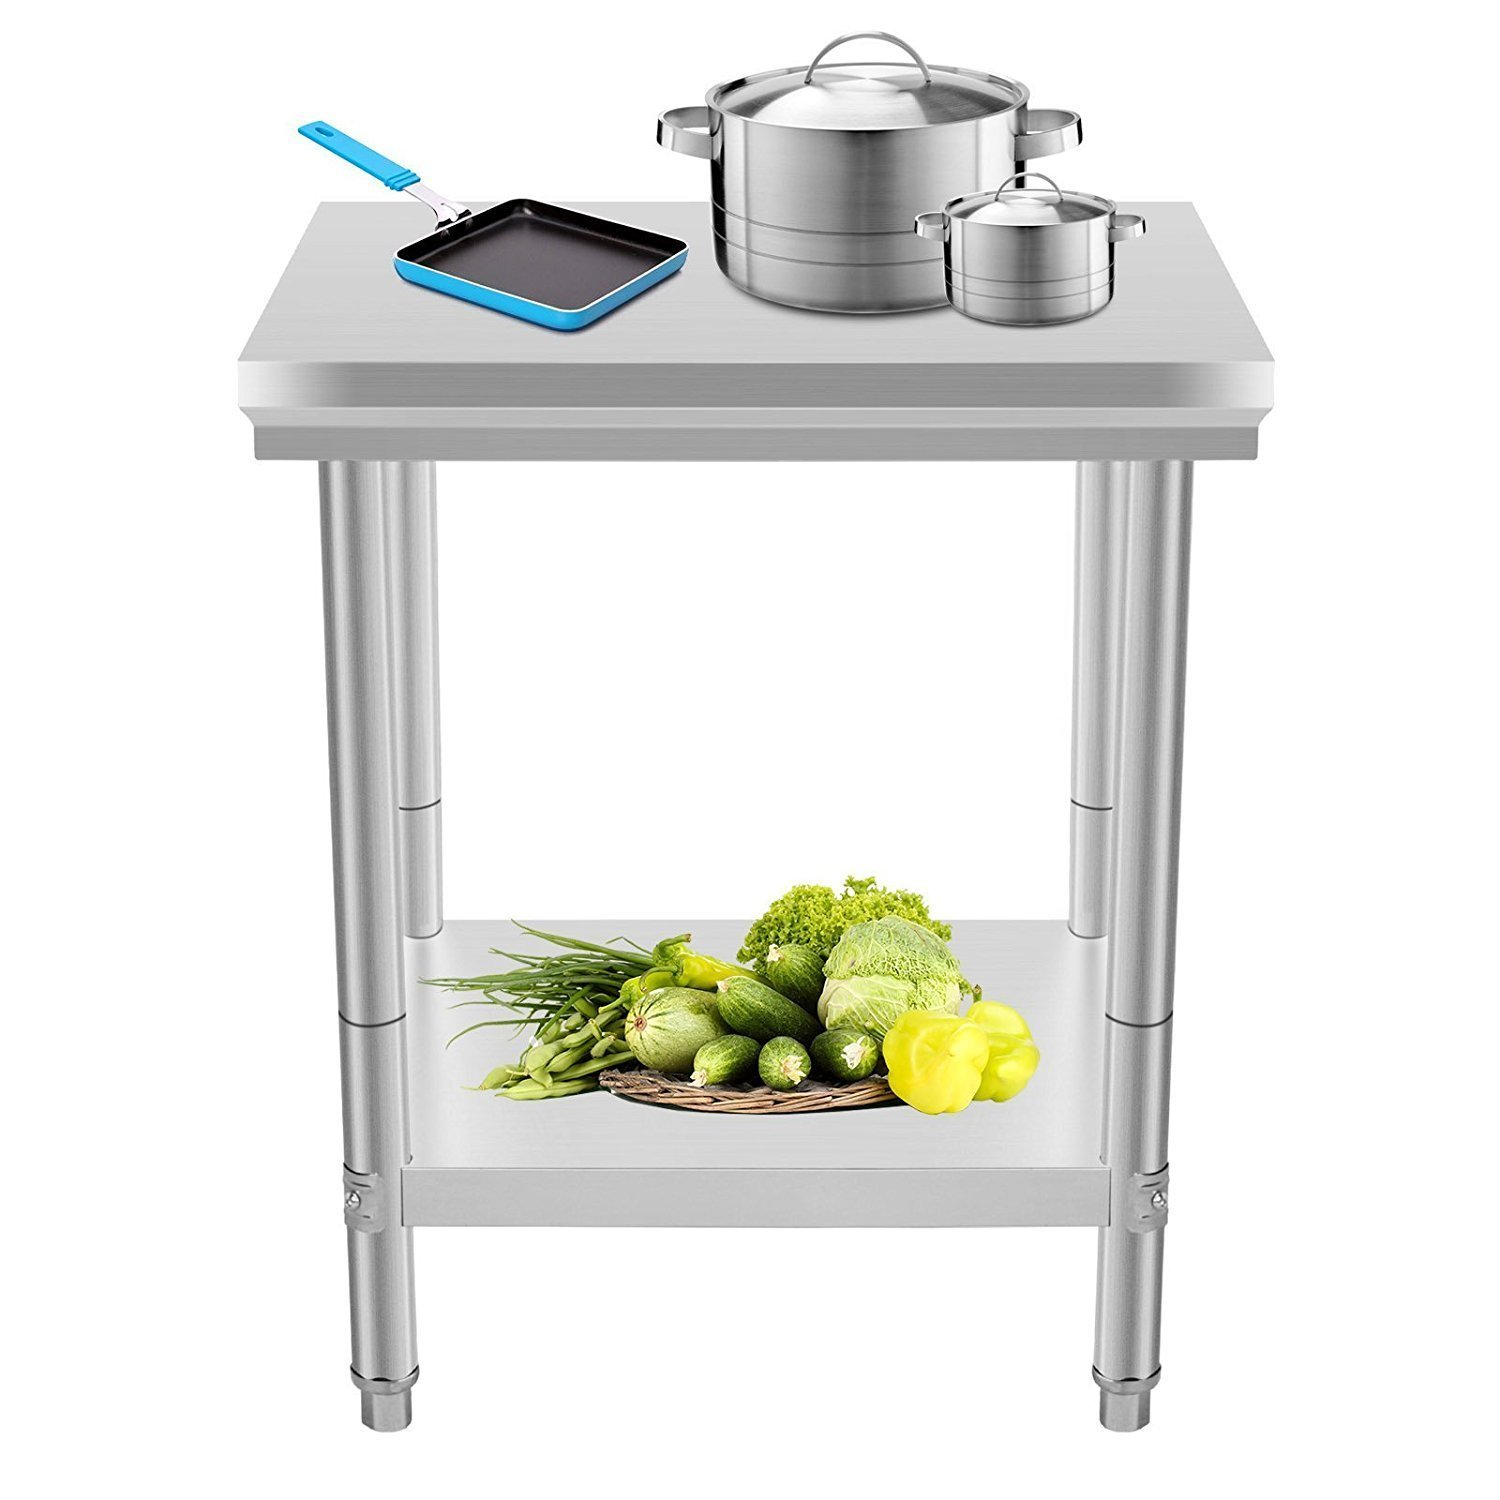 Mophorn Stainless Steel Work table 24 x 24 Inch Food Work Prep Table Work table for restaurant kitchen Home Warehouse